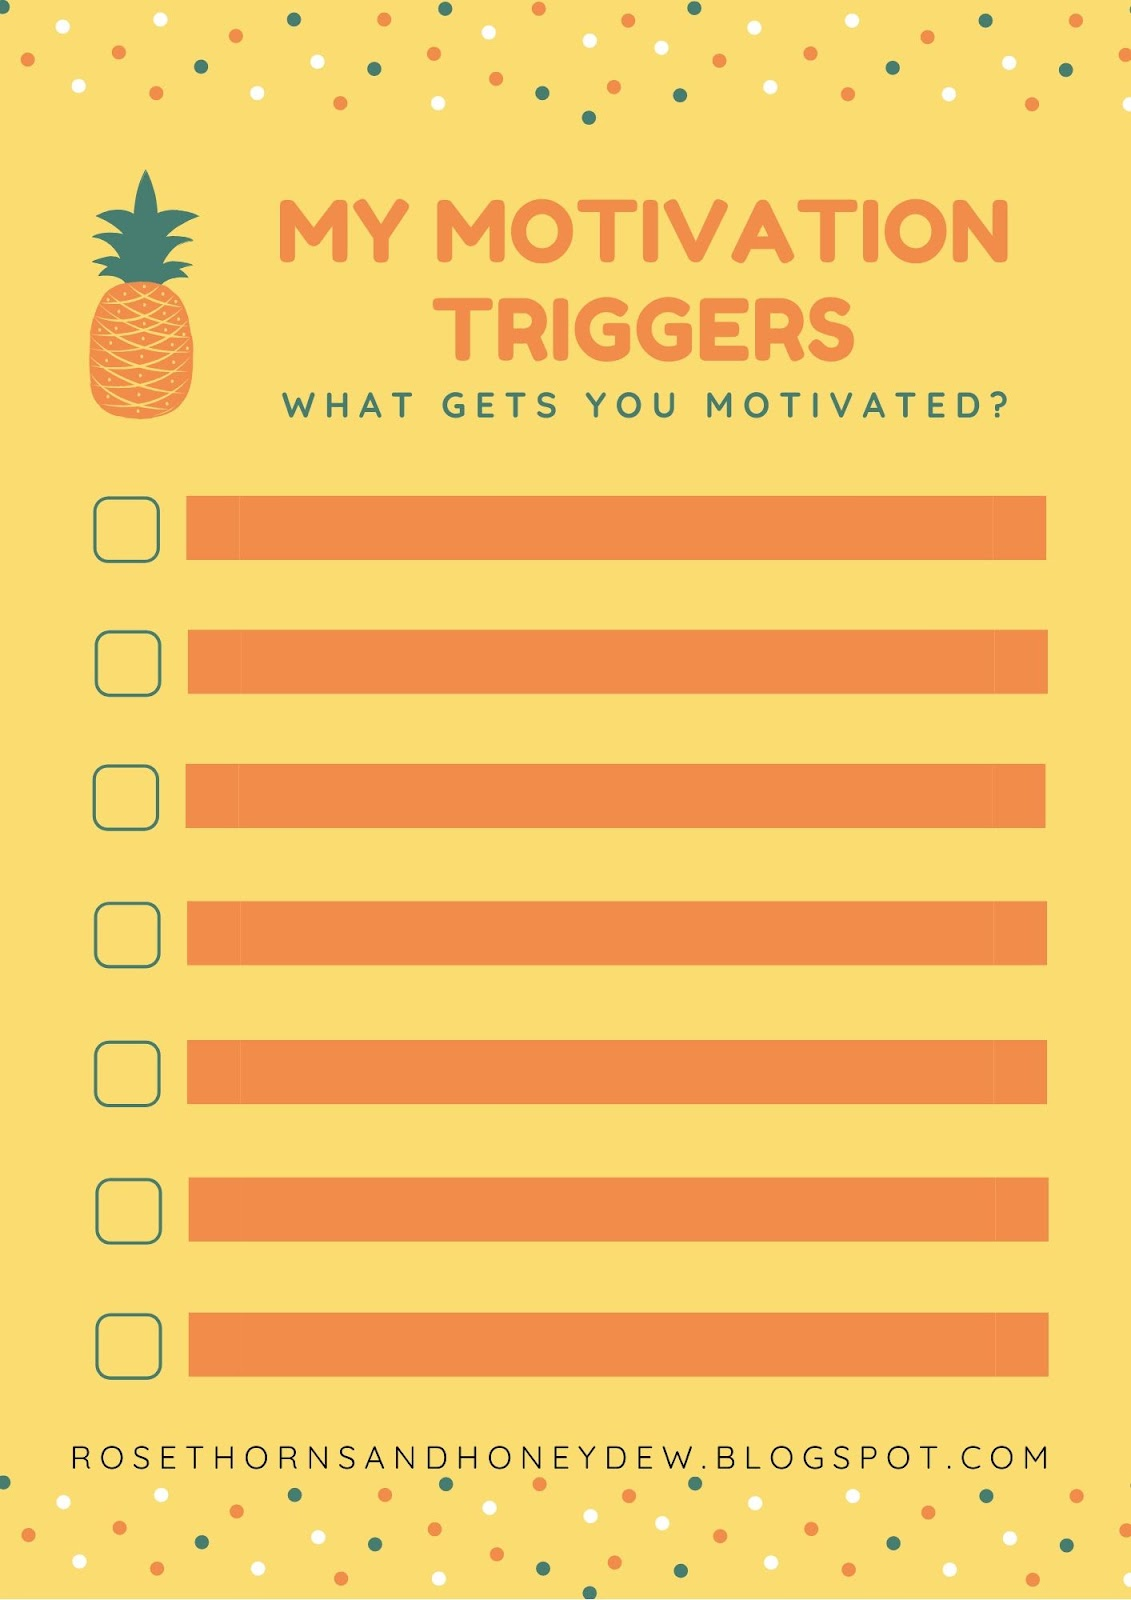 Motivations Triggers Productivity Worksheet from Rosethorns and Honeydew